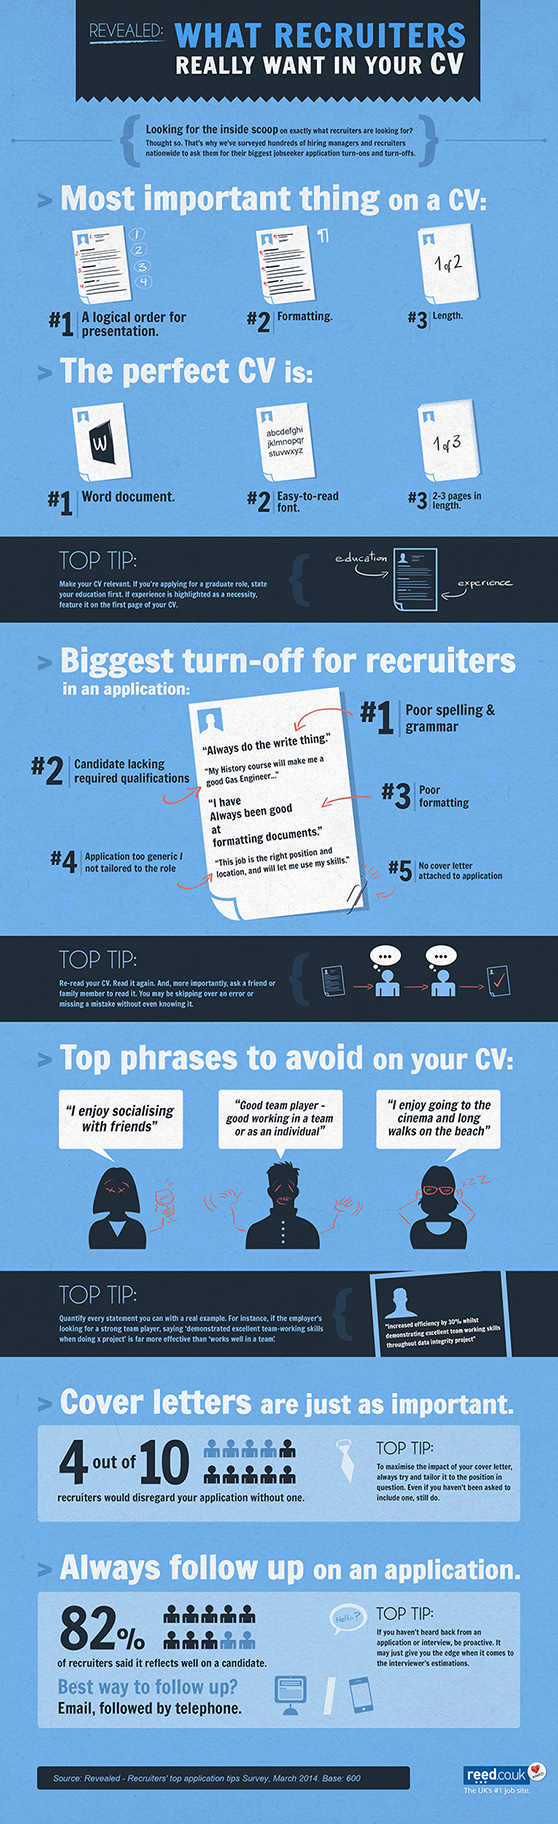 Revealed: What recruiters really want in your CV